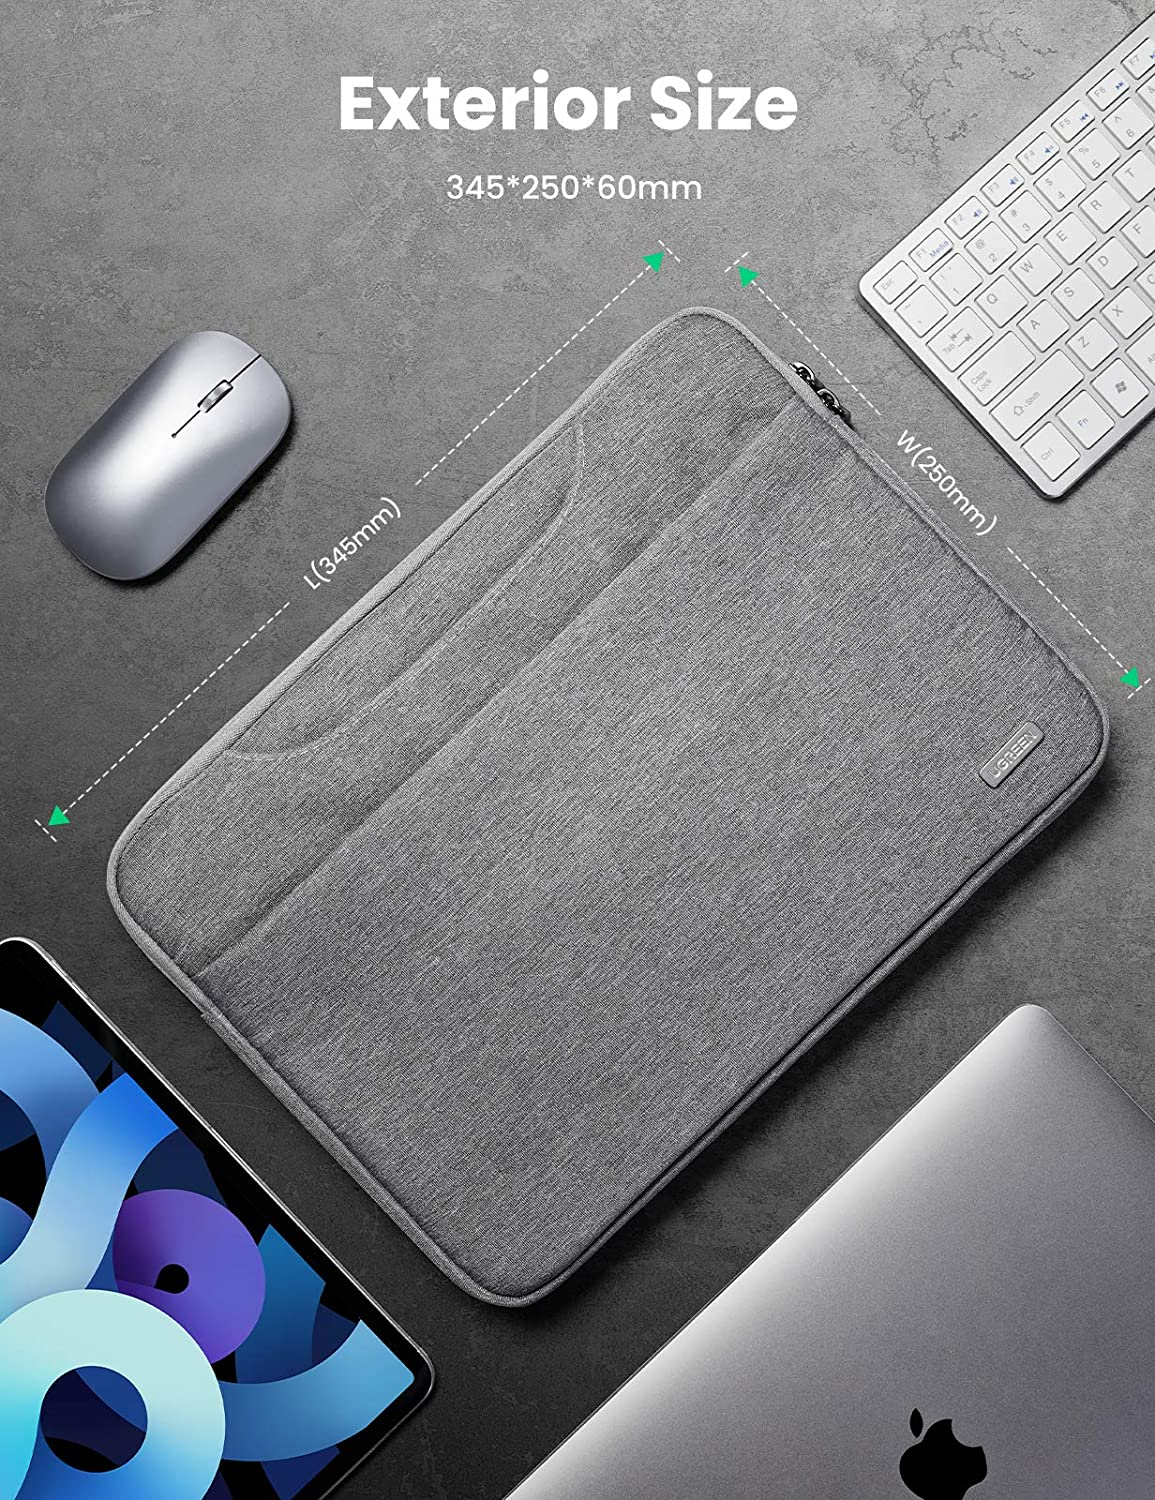 iPad Pro 2020 Dell XPS UGREEN Laptop Sleeve 13-13.9 Inch Protective Case with Portable Handle Laptop Waterproof Cover Compatible with MacBook Pro 2020 MacBook Air M1 Surface Pro 3 Envy 13